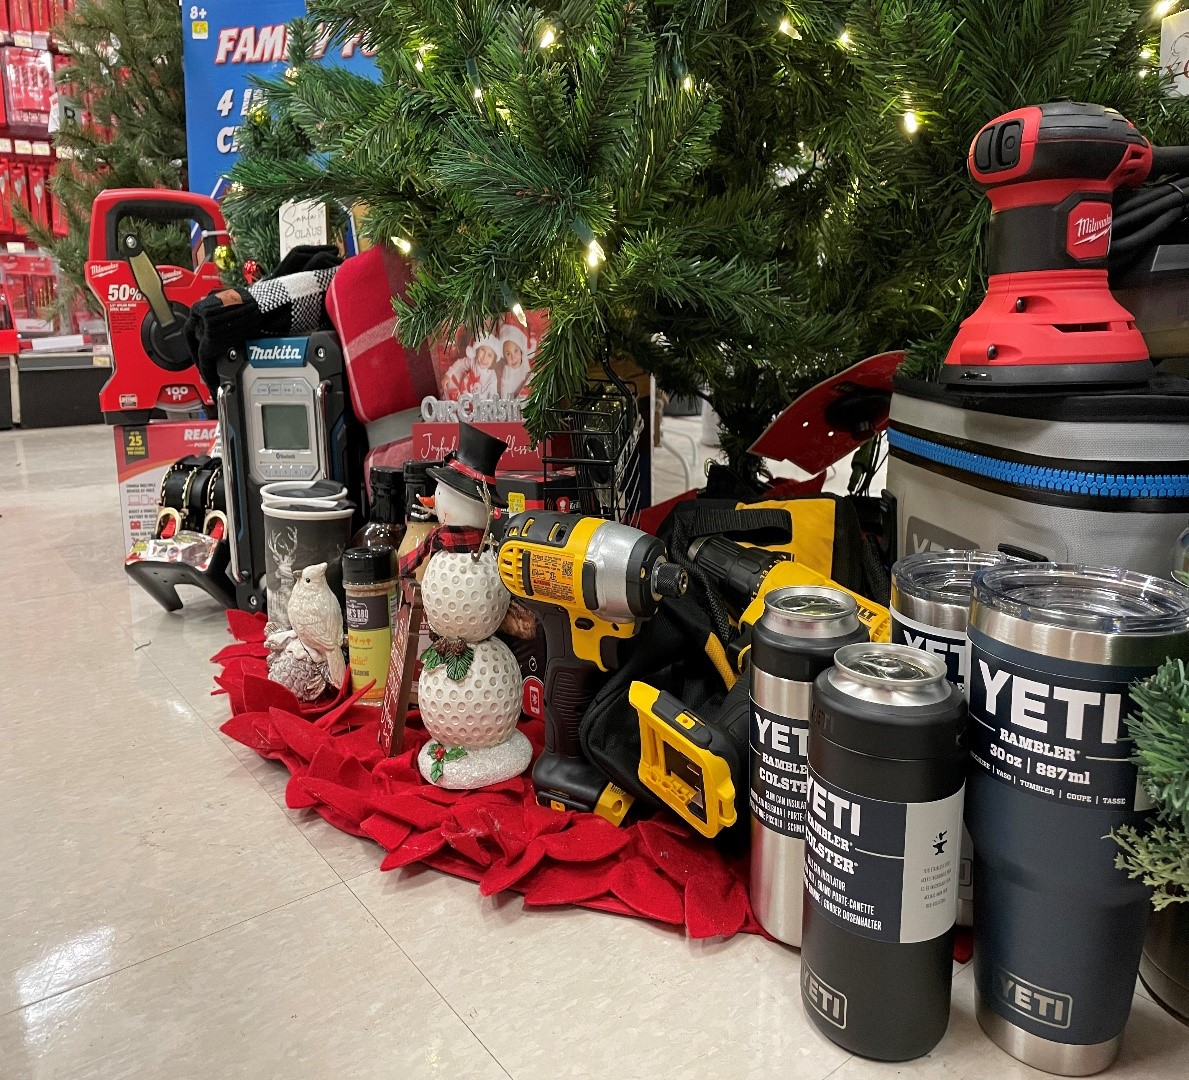 Gifts for All Budgets (Home Hardware Building Centre) Image